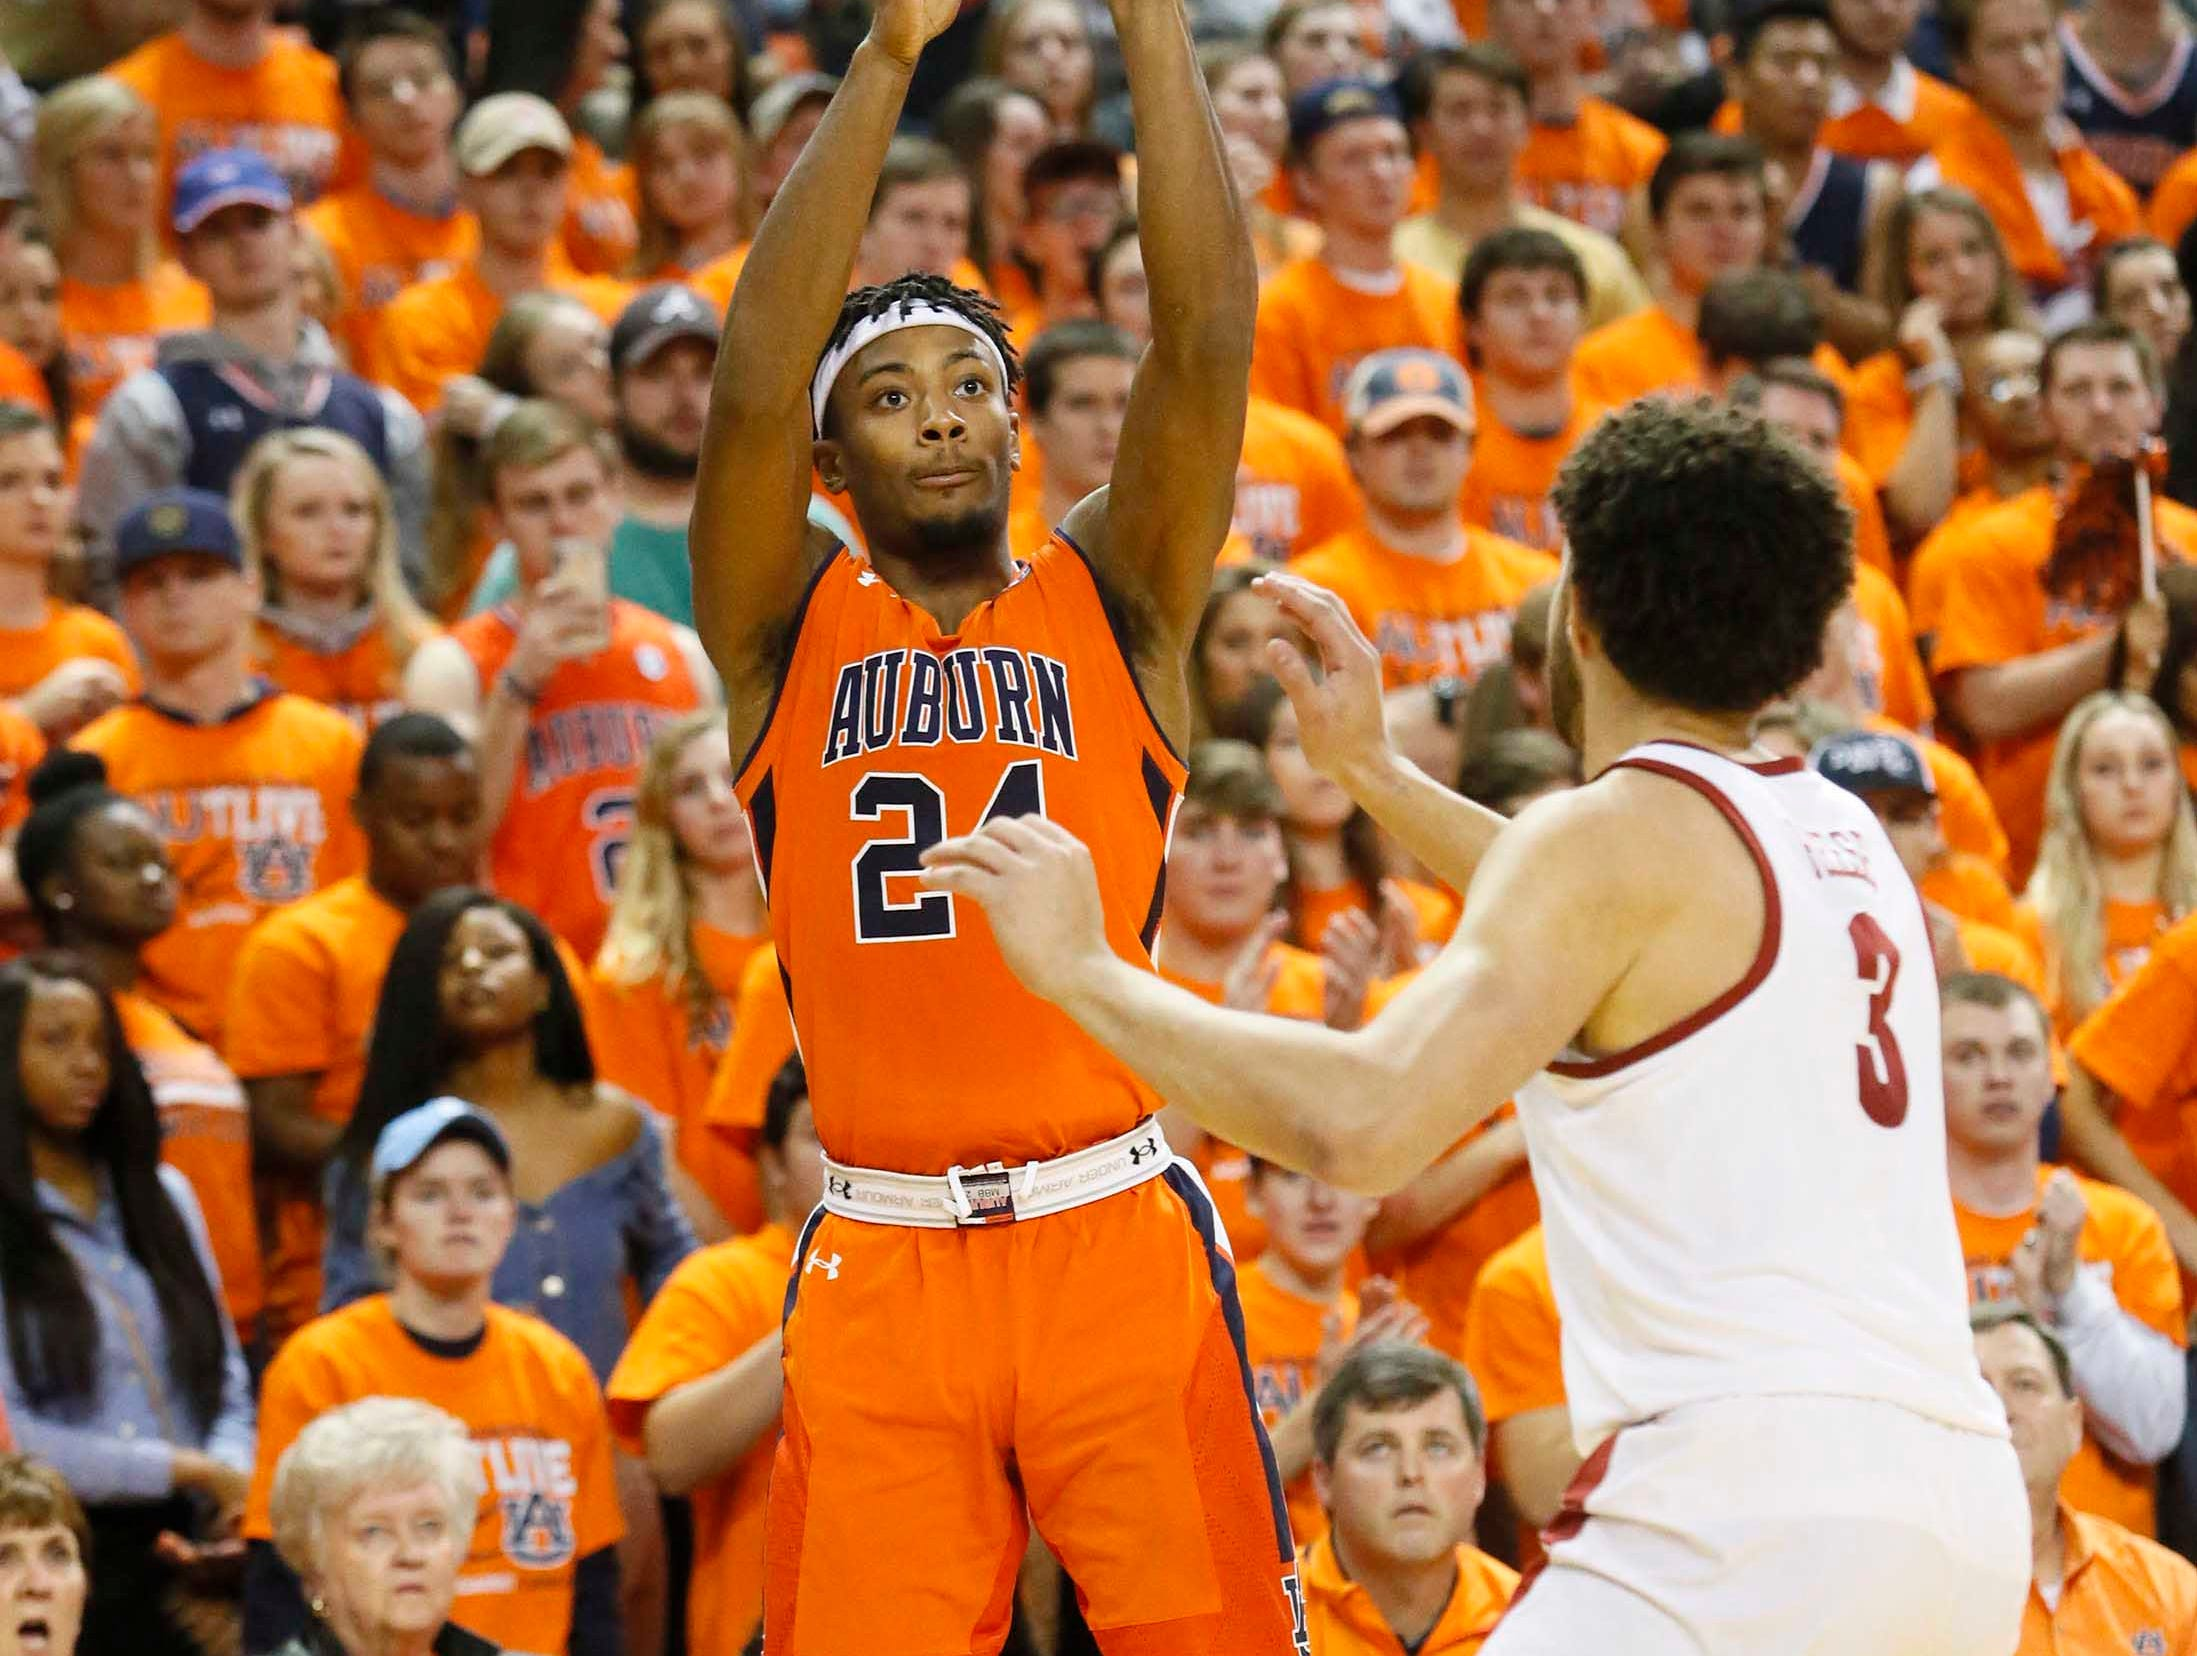 Feb 2, 2019; Auburn, AL, USA; Auburn Tigers forward Anfernee McLemore (24) takes a shot over Alabama Crimson Tide forward Alex Reese (3) during the second half at Auburn Arena. Mandatory Credit: John Reed-USA TODAY Sports